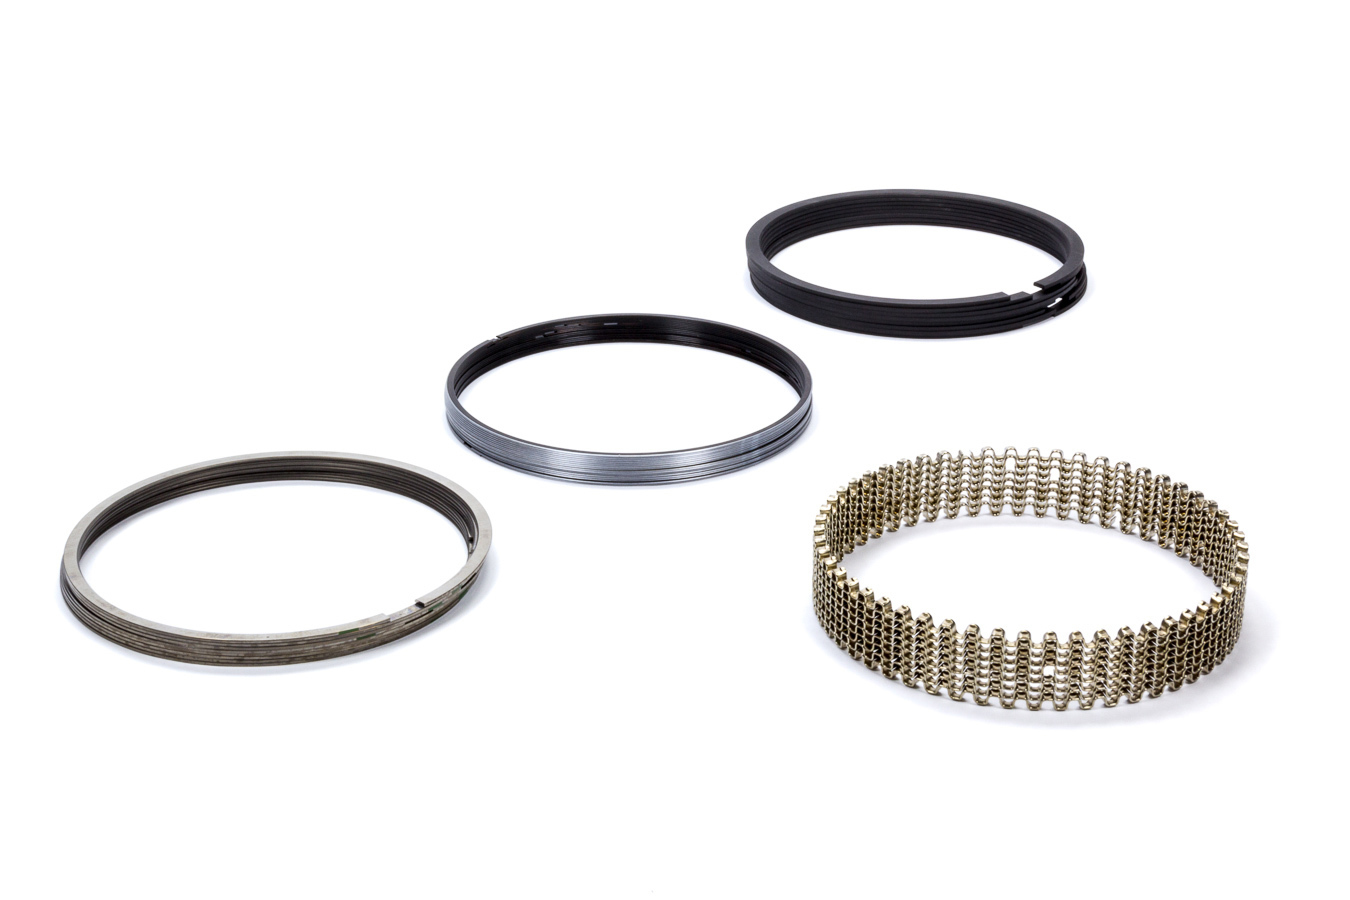 Standard Tension Kit 8 Cylinder 1.2 x 1.5 x 3.0 mm Thick 3.898 in Bore Stainless Steel Piston Rings